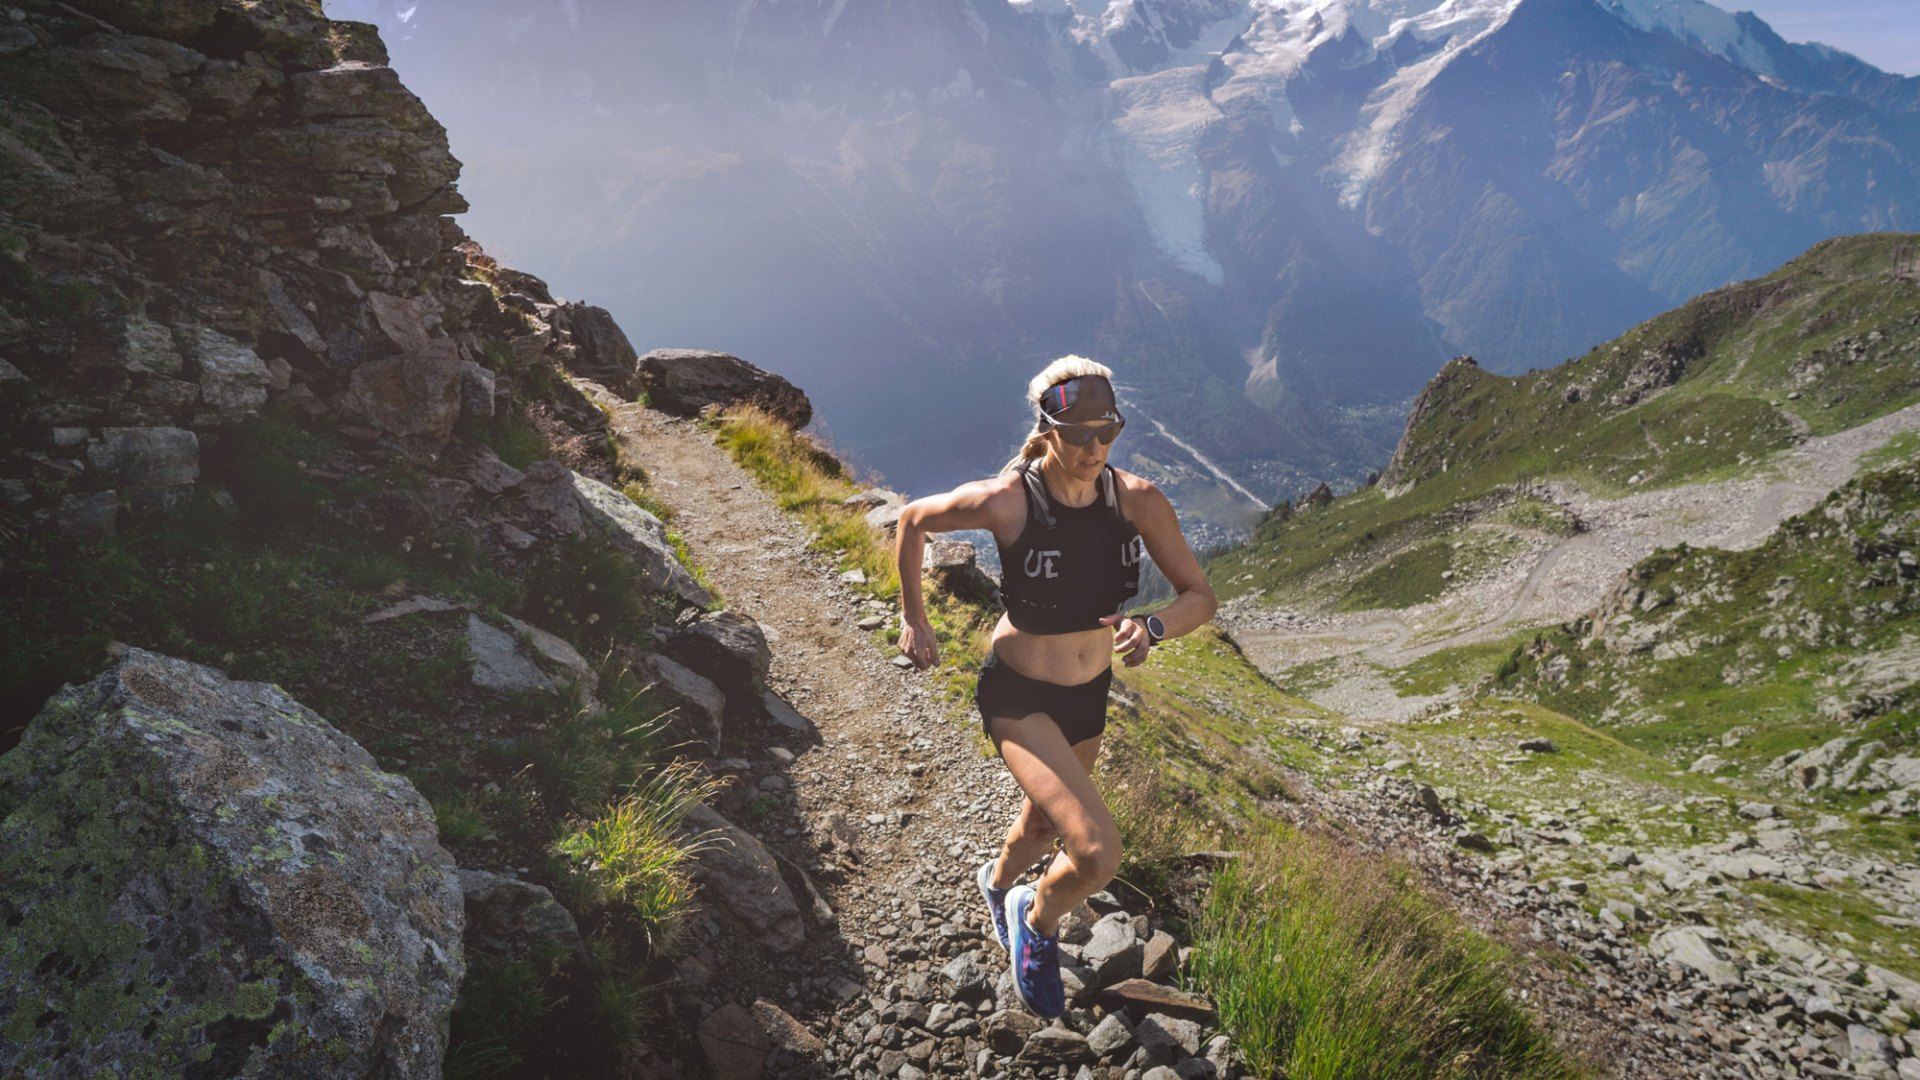 Season 2, Episode 4 of 'Run Around the World': Pushing New Levels of Human Potential